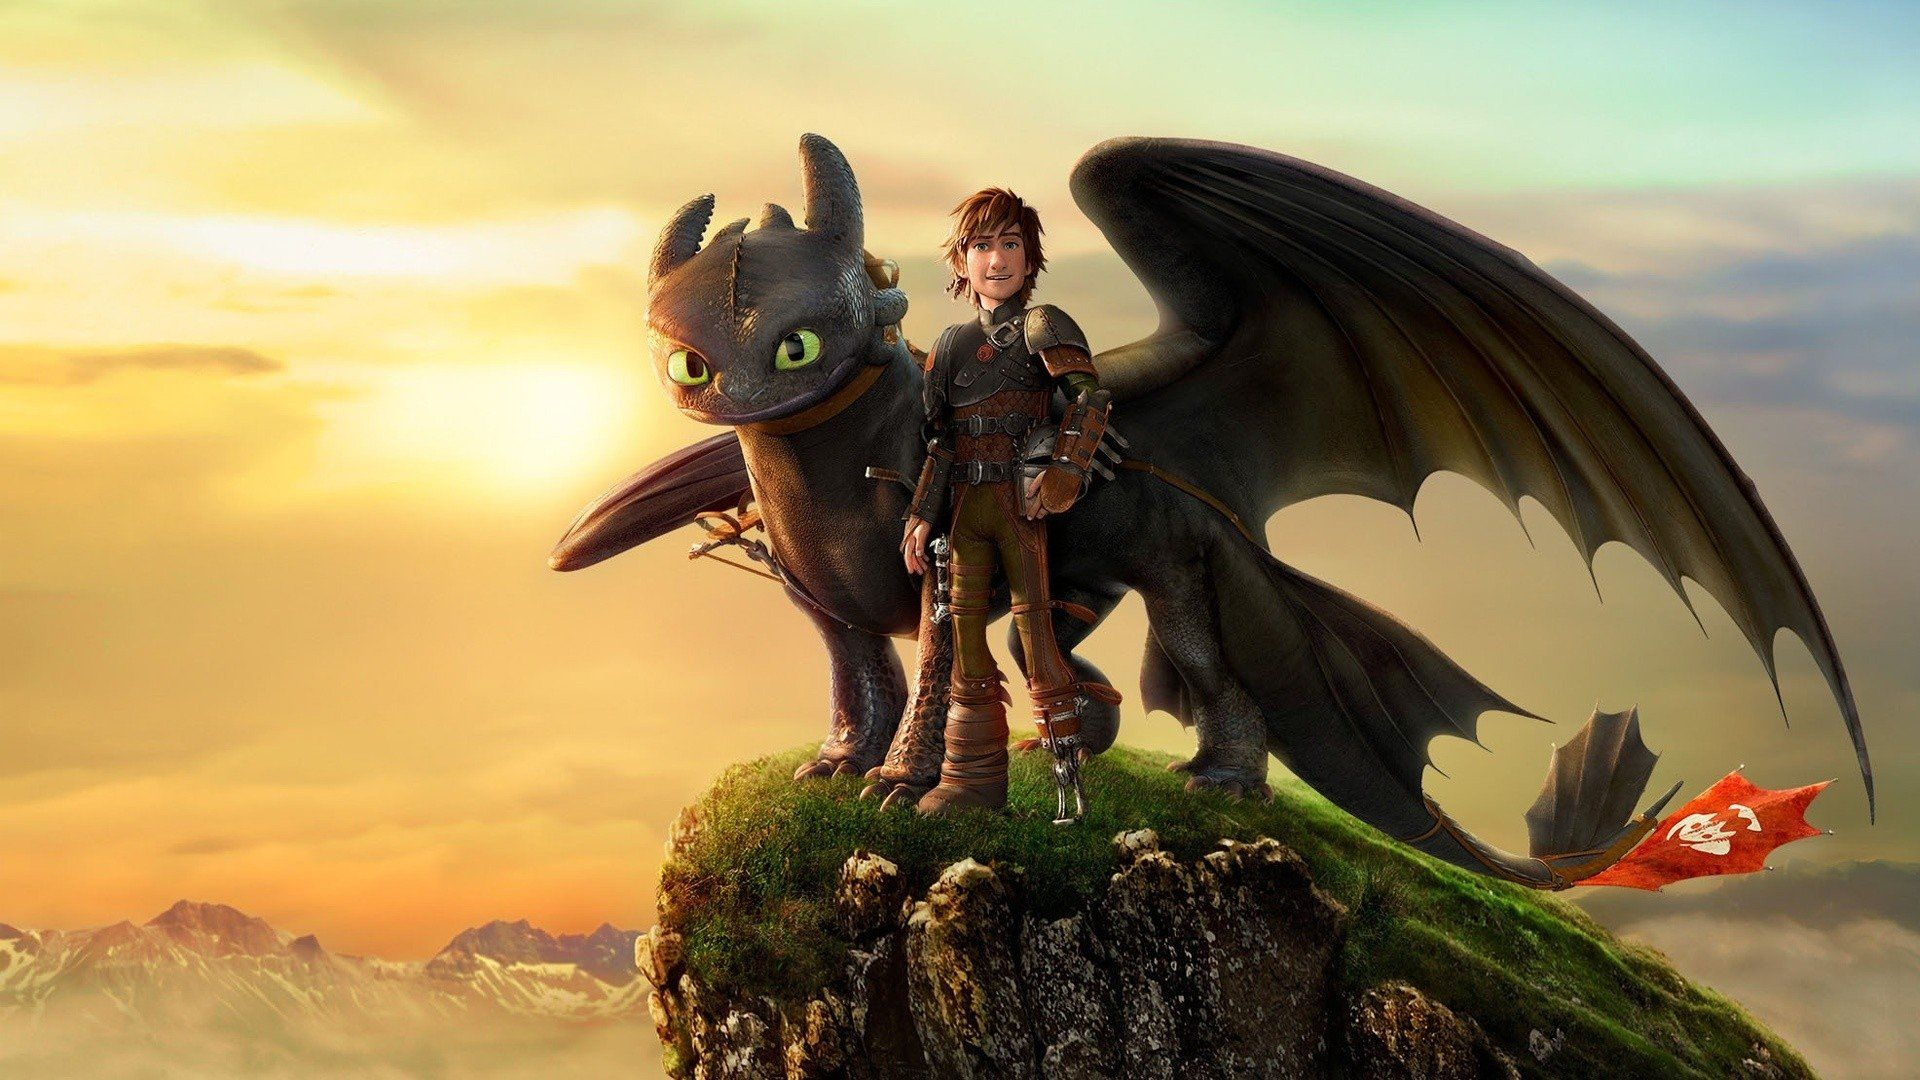 How To Train Your Dragon Wallpapers Top Free How To Train Your Dragon Backgrounds Wallpaperaccess